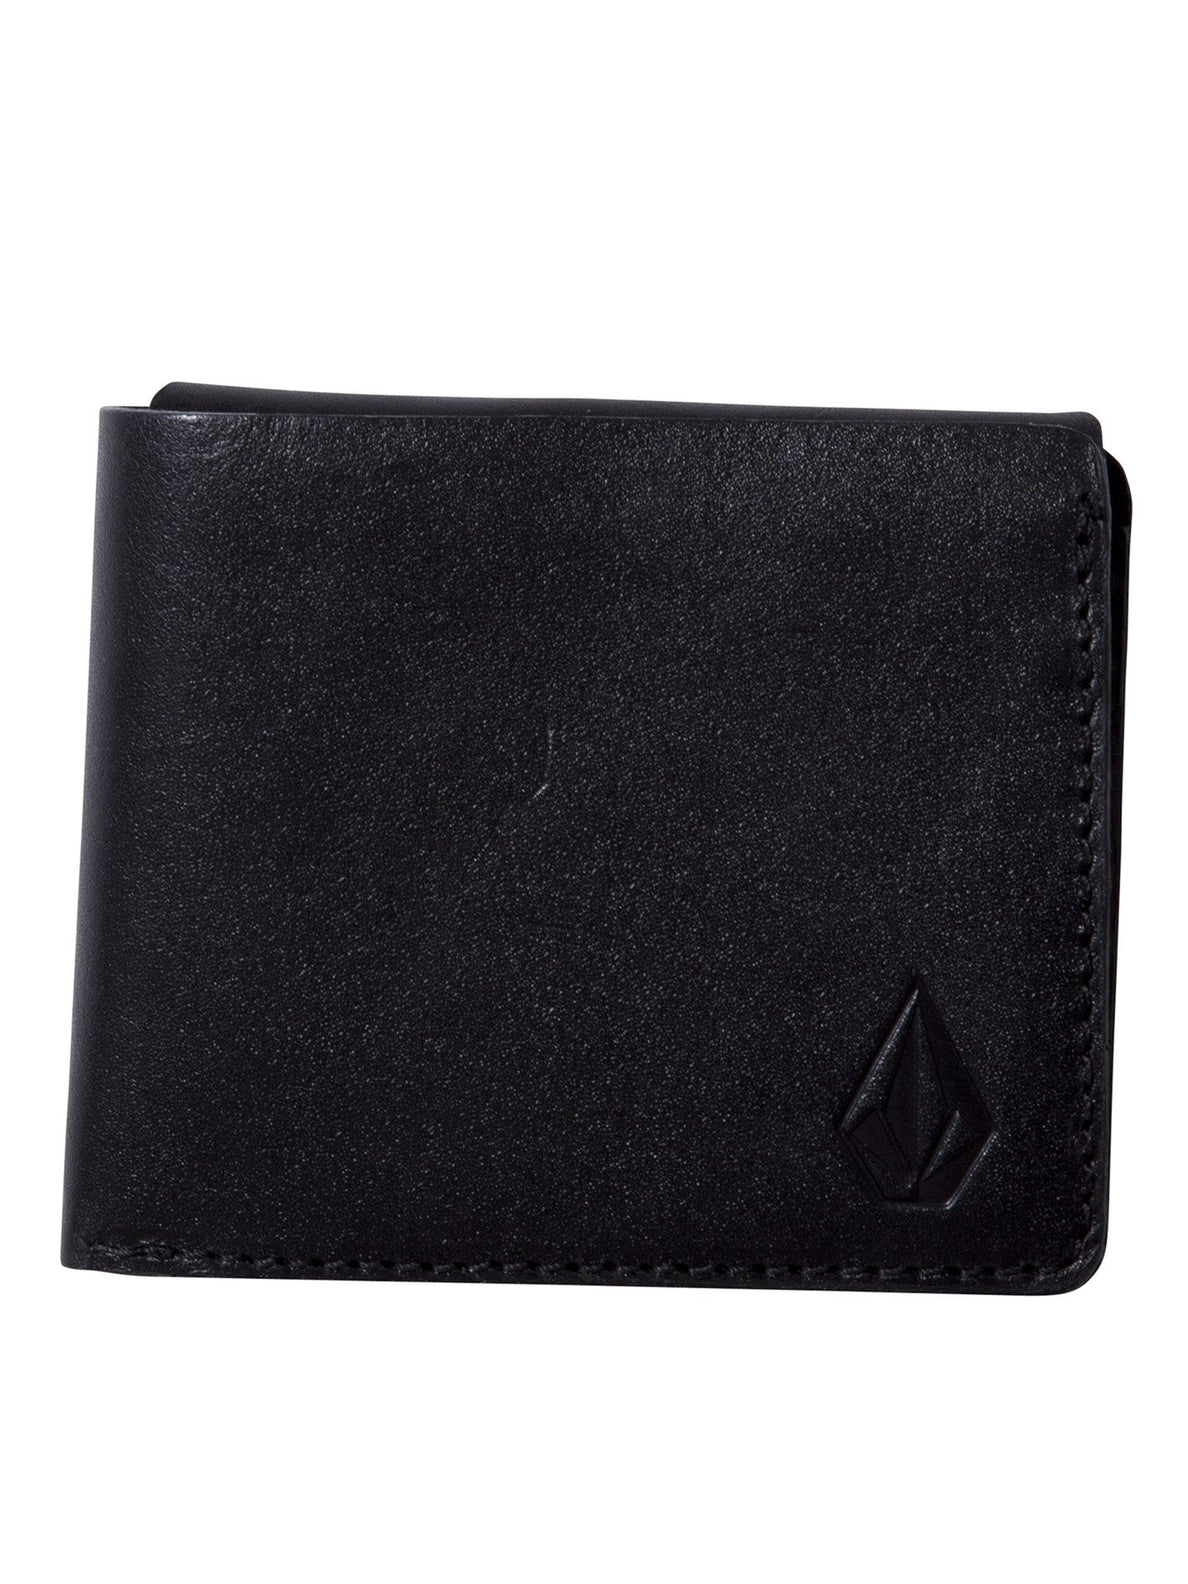 3Fold Leather Wallet - Black (D6011955_BLK) [F]